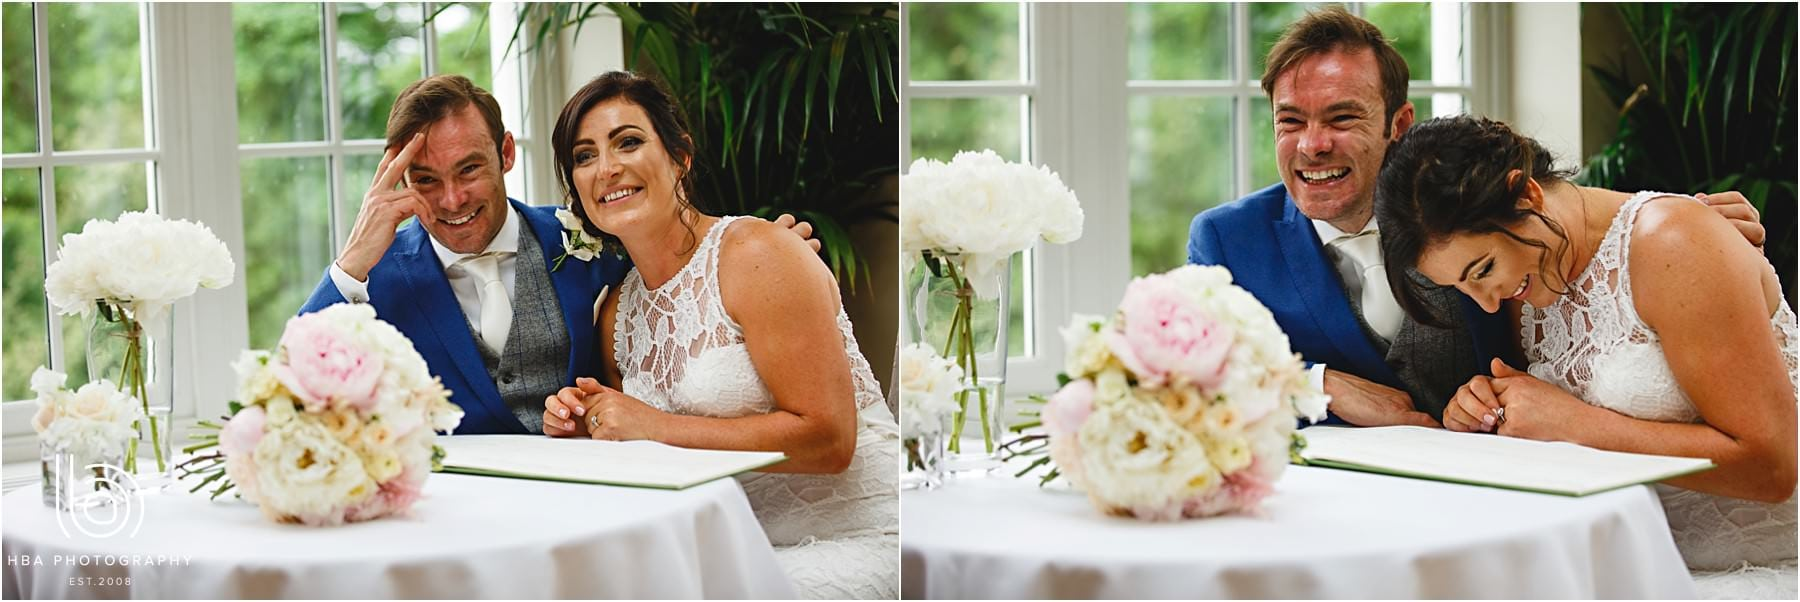 the bride and groom signing the register